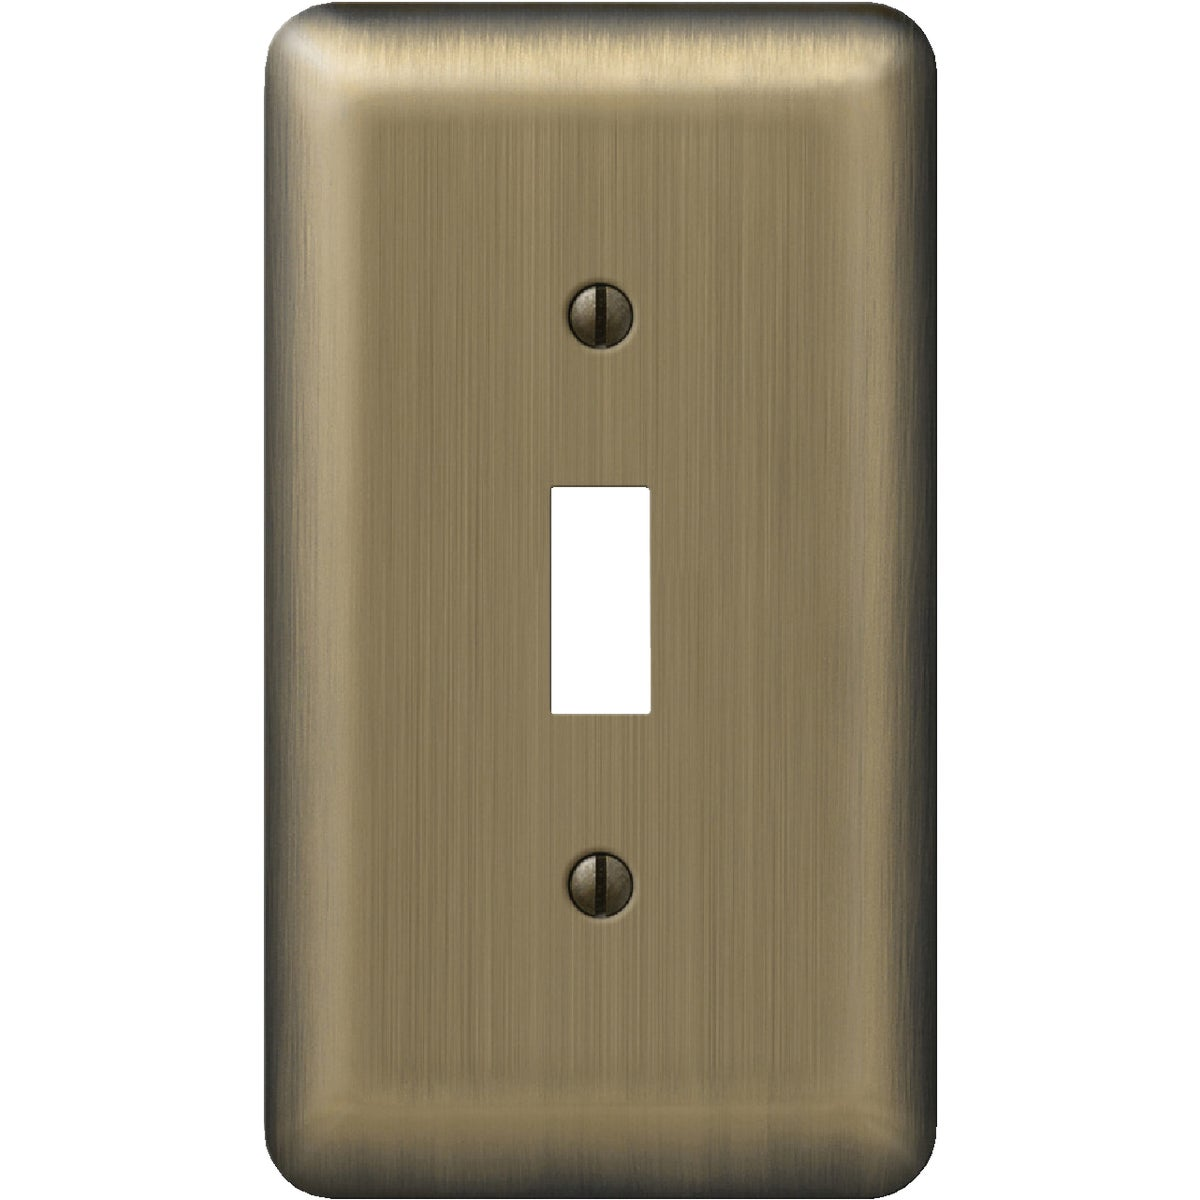 AB 1-TOGGLE WALL PLATE - 9AB101 by Jackson Deerfield Mf